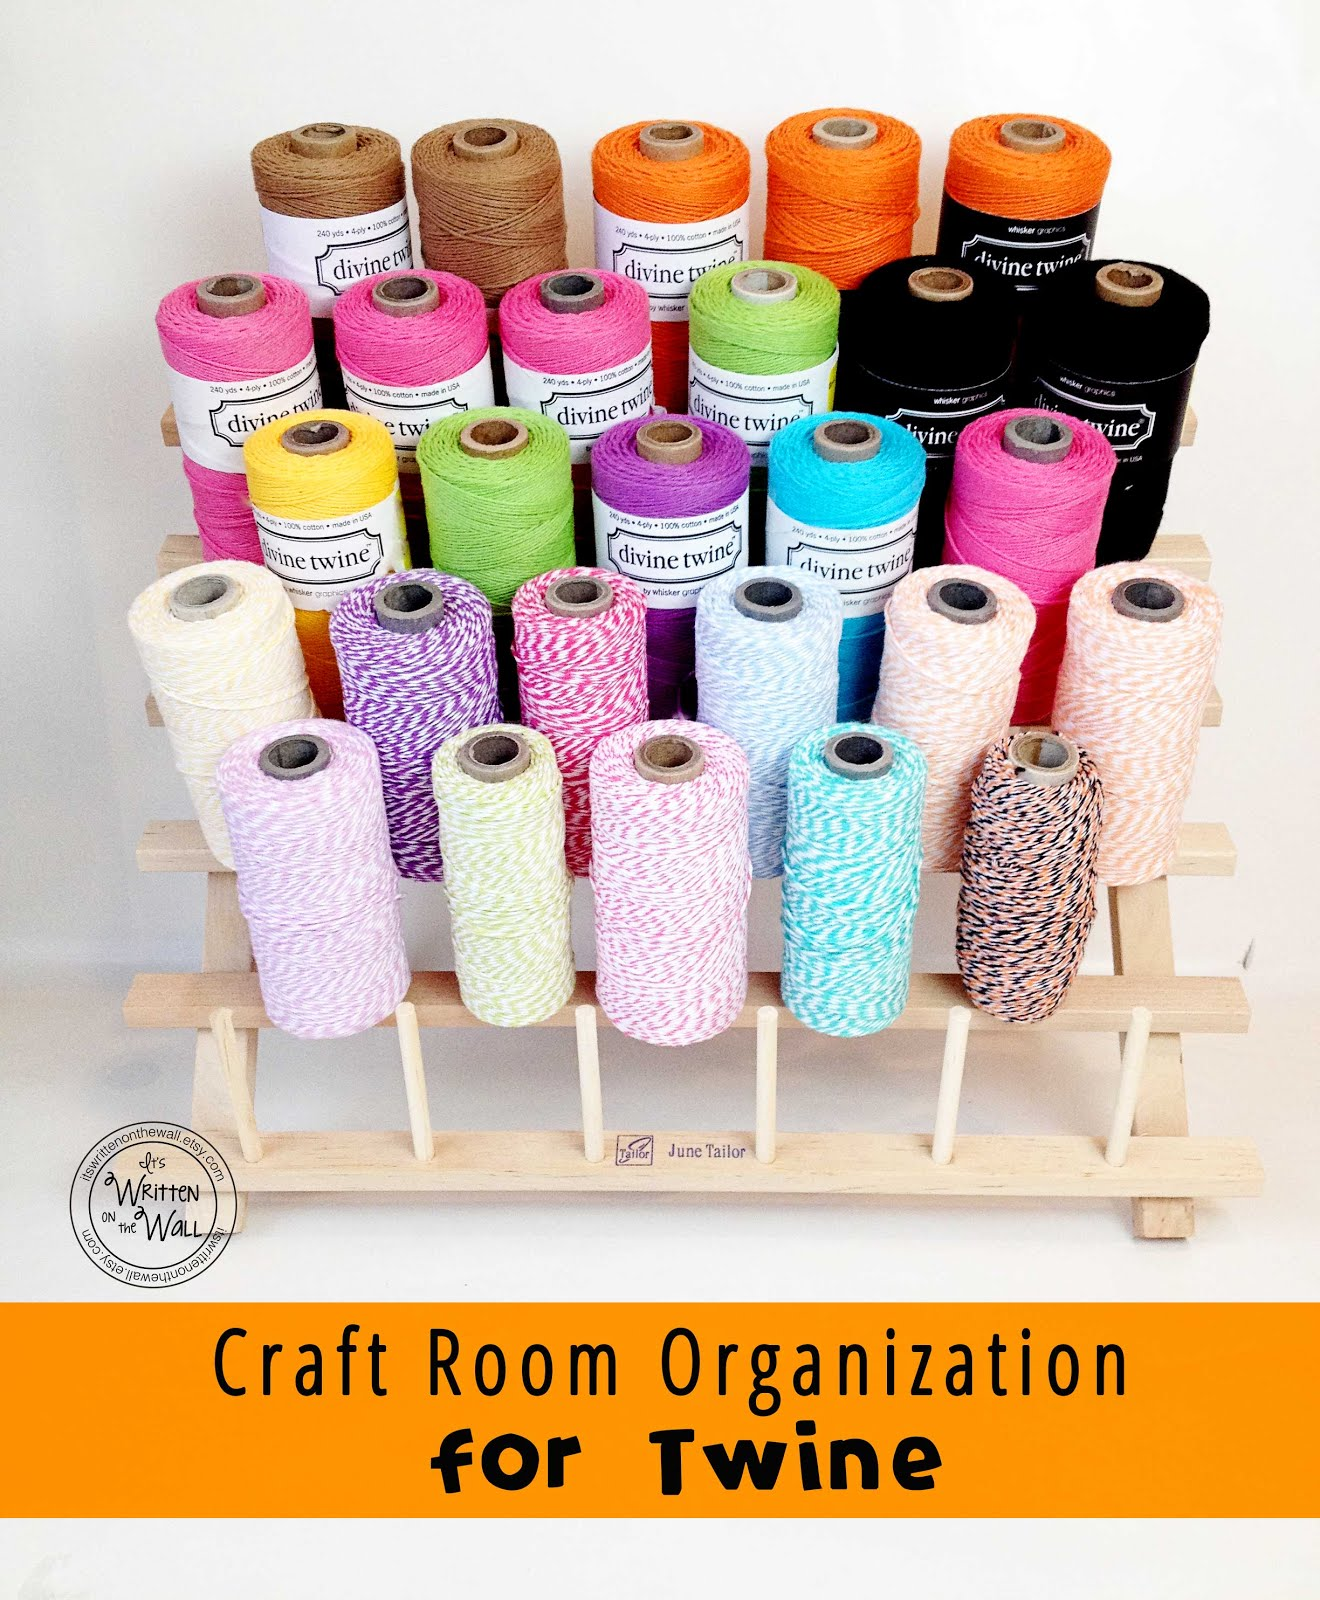 Craft Room Organization Tips-TWINE